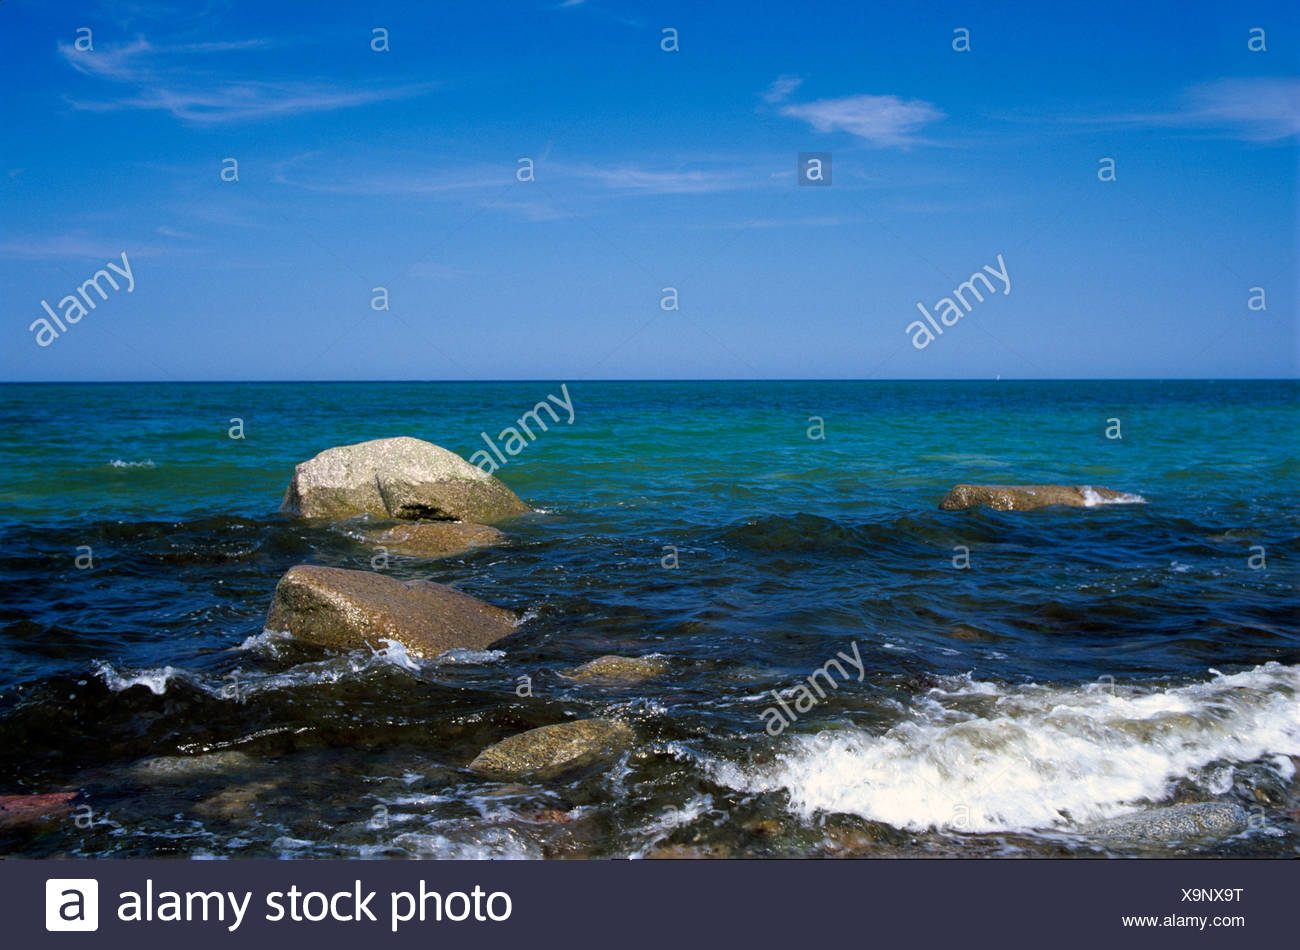 Rocks in the surf, Baltic Sea, Ruegen Island, Mecklenburg-Western Pomerania, Germany, Europe - Stock Image